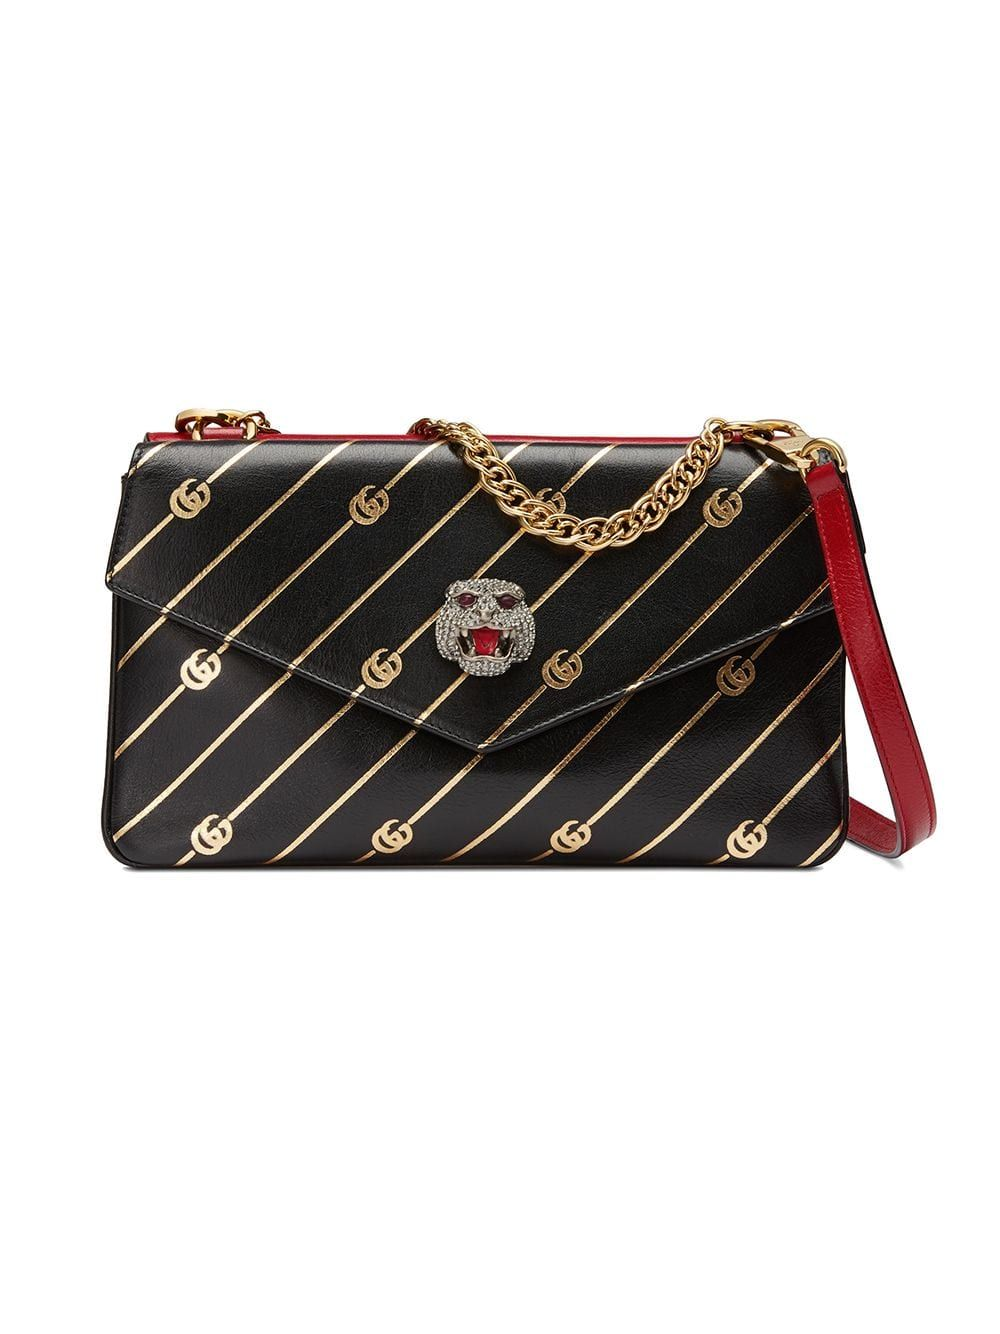 5a47458e5 Gucci Medium double shoulder bag - Black in 2019 | Products | Bags ...